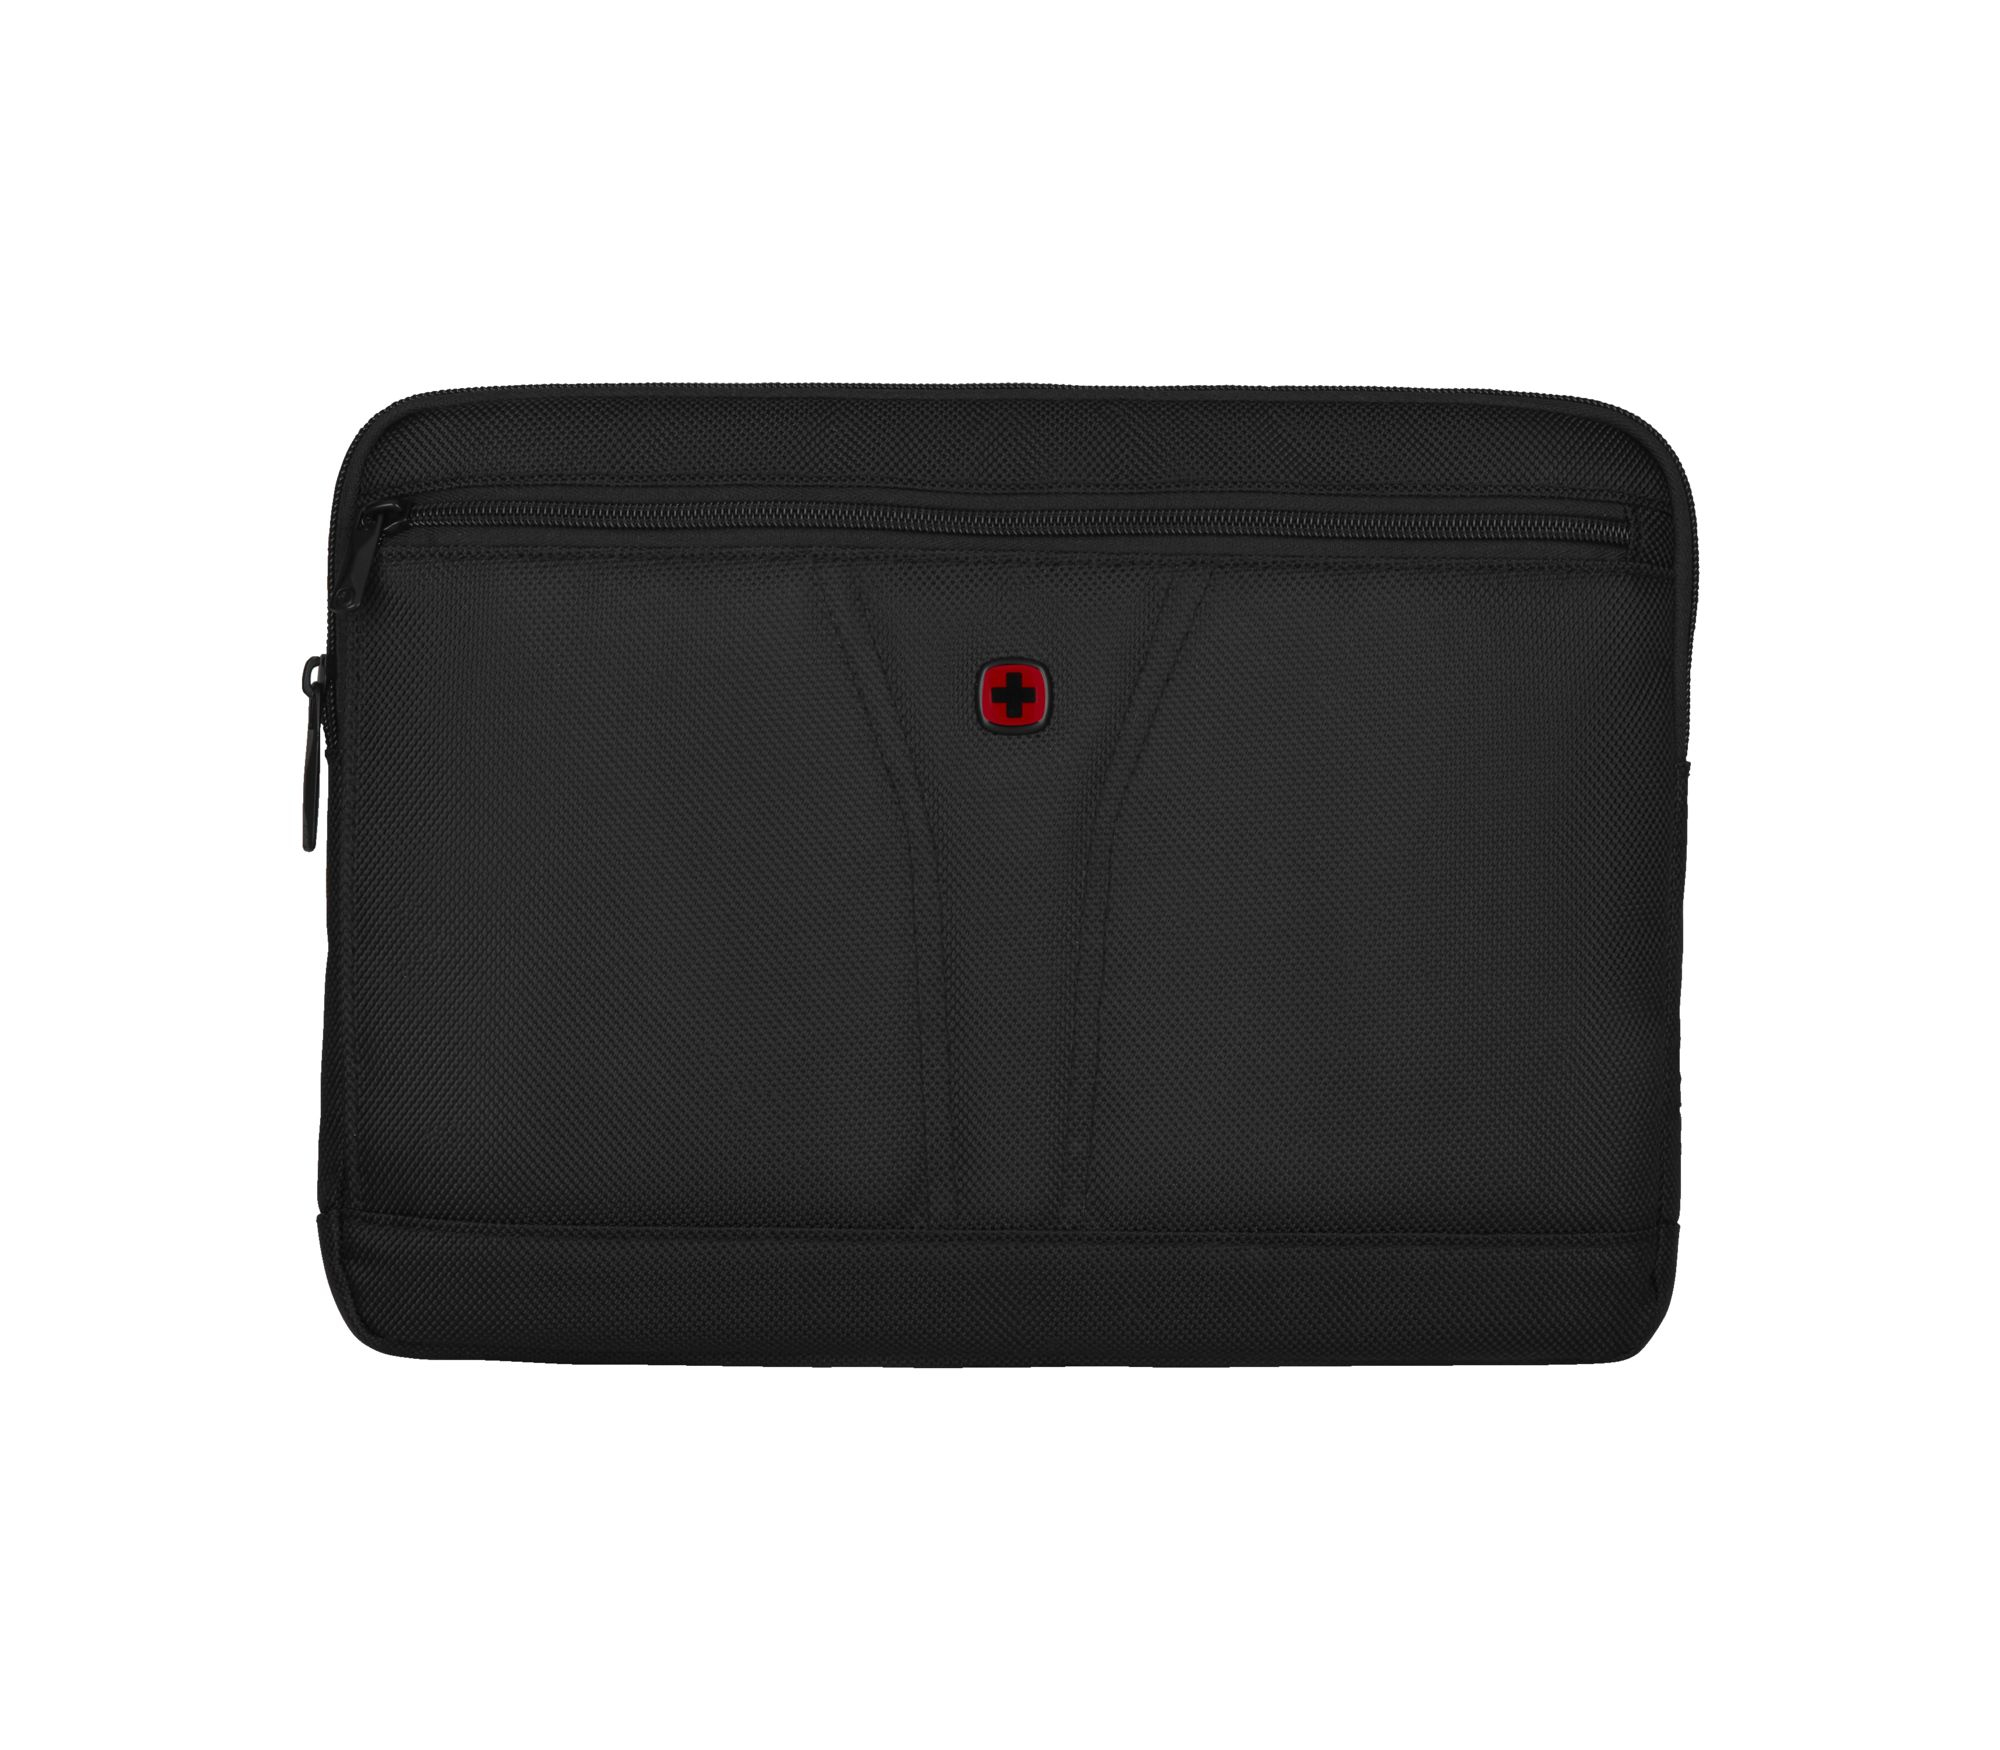 Wenger/SwissGear BC Top notebook case 31.8 cm (12.5IN) Sleeve case Black 610183